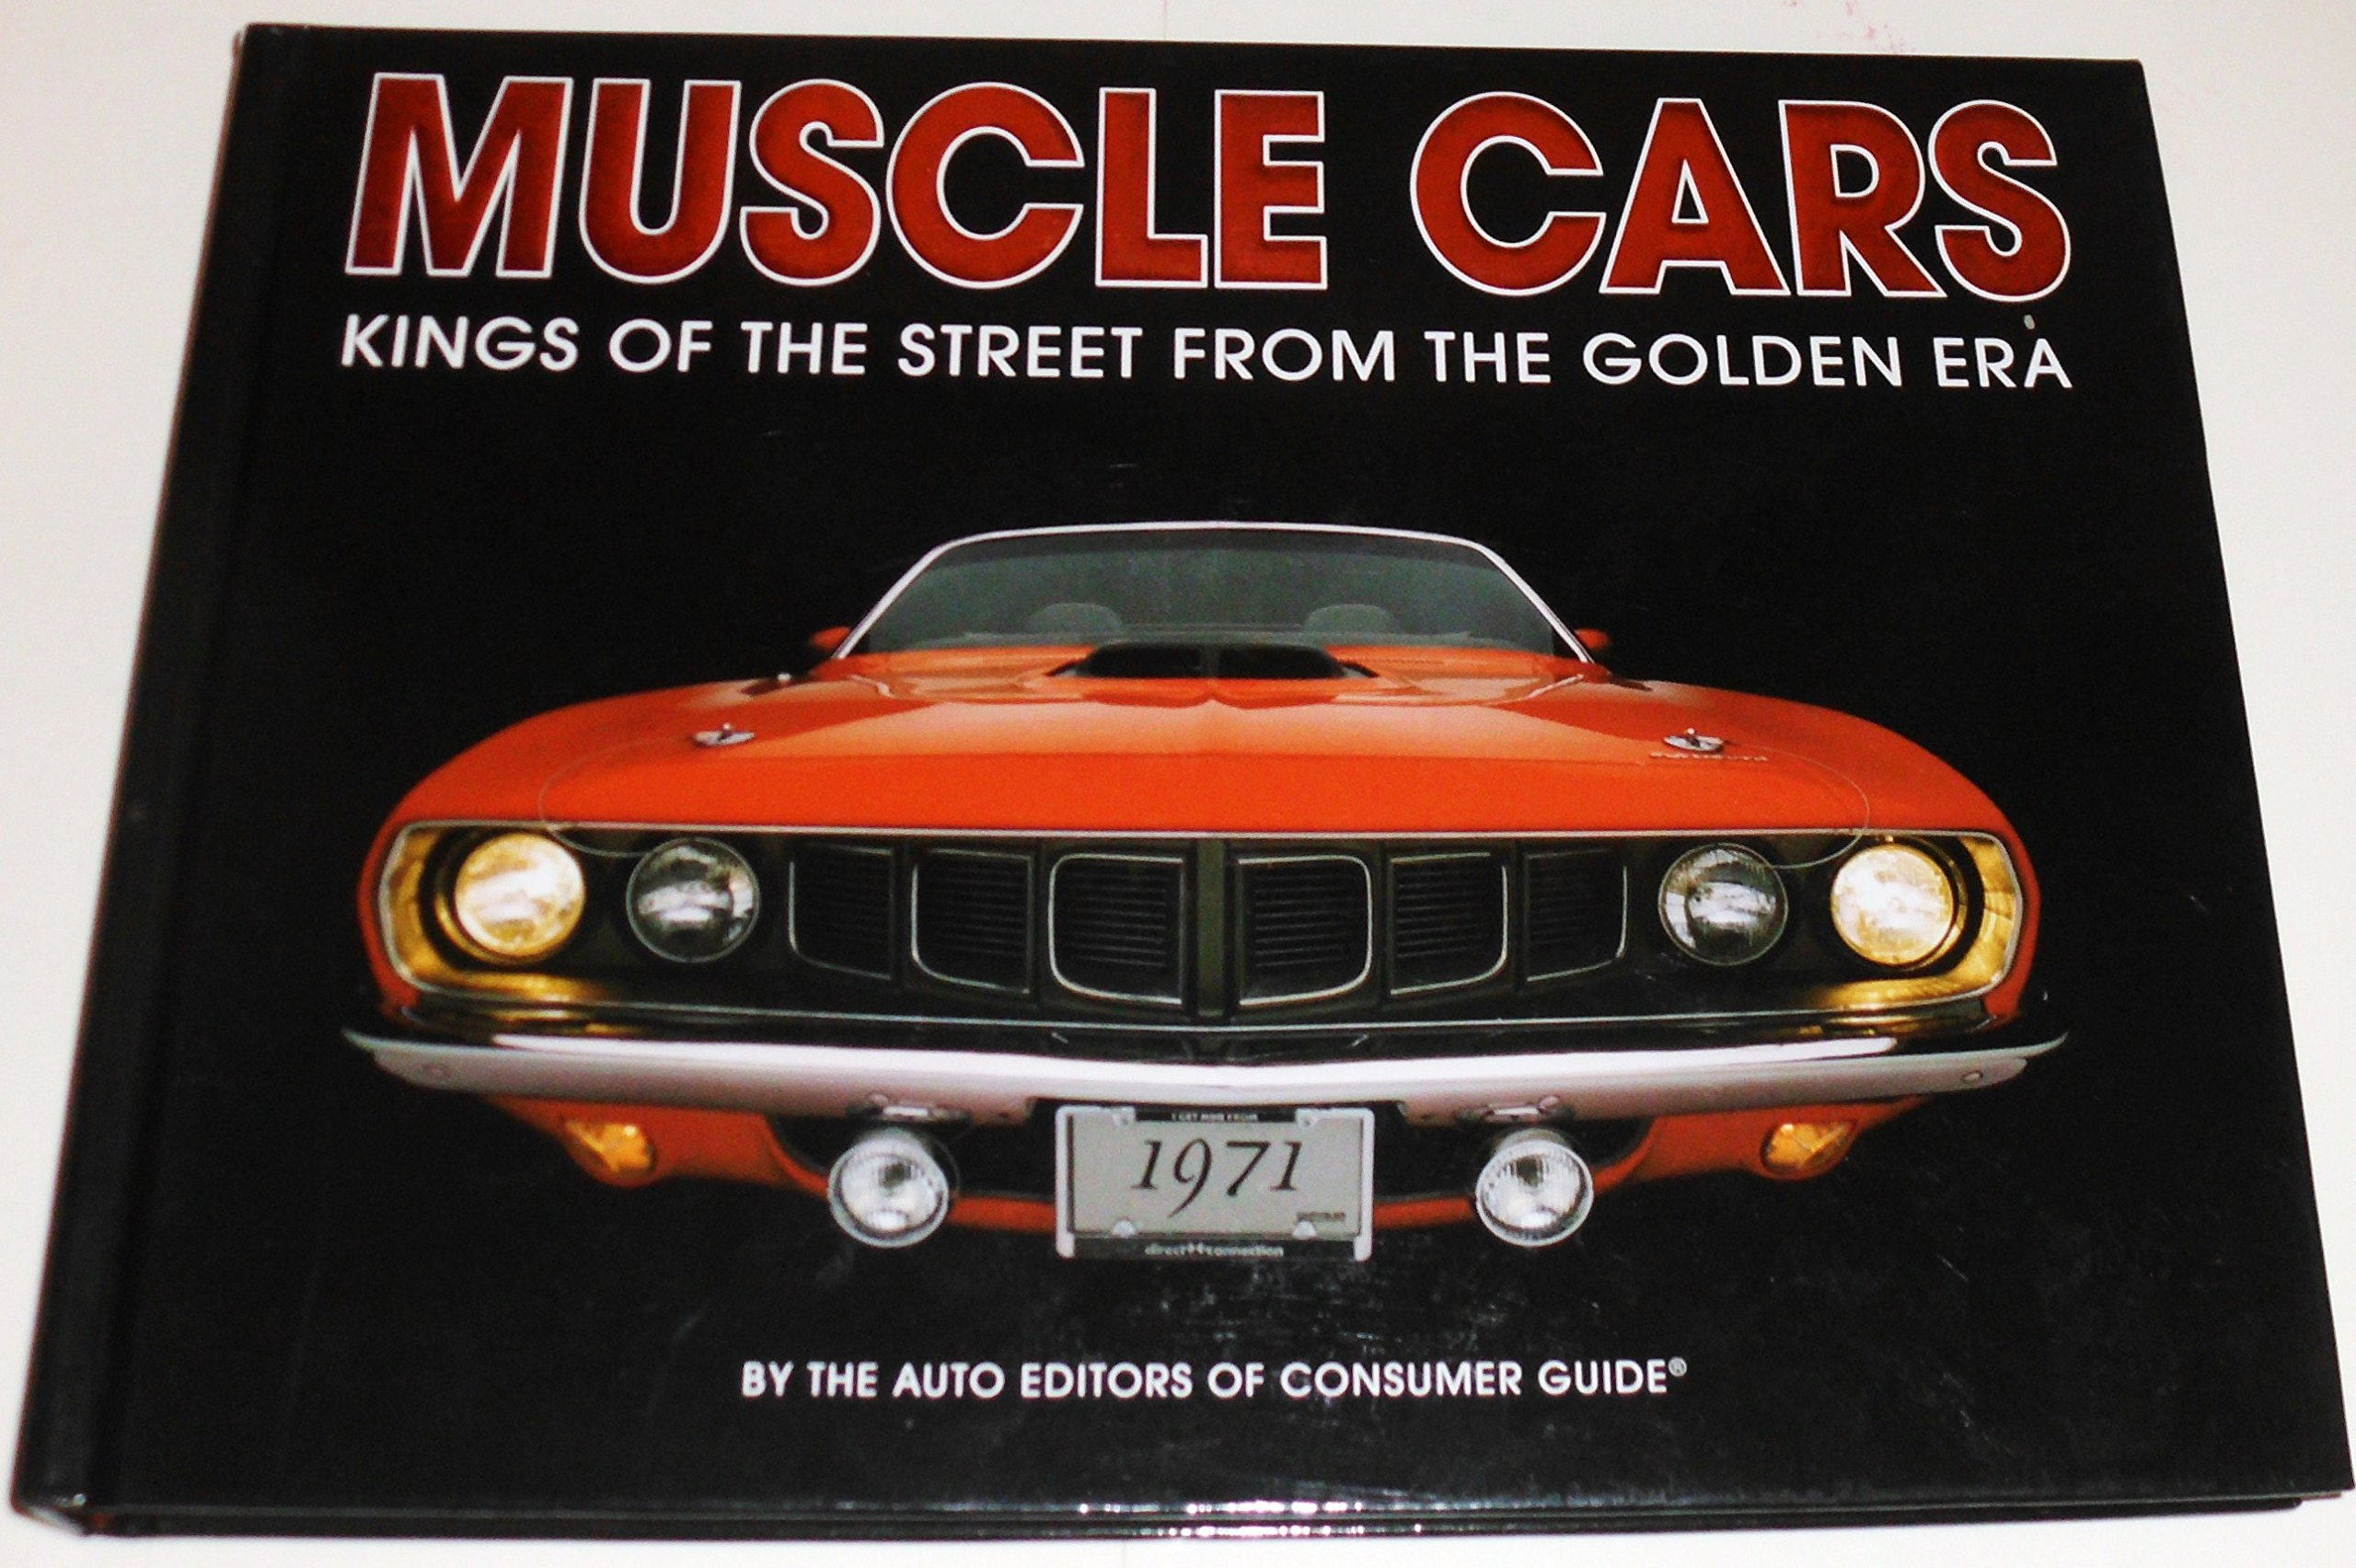 Muscle Cars: Kings of the Street from the Golden Era: Auto Editors of  Consumer Guide: 9781450885652: Amazon.com: Books